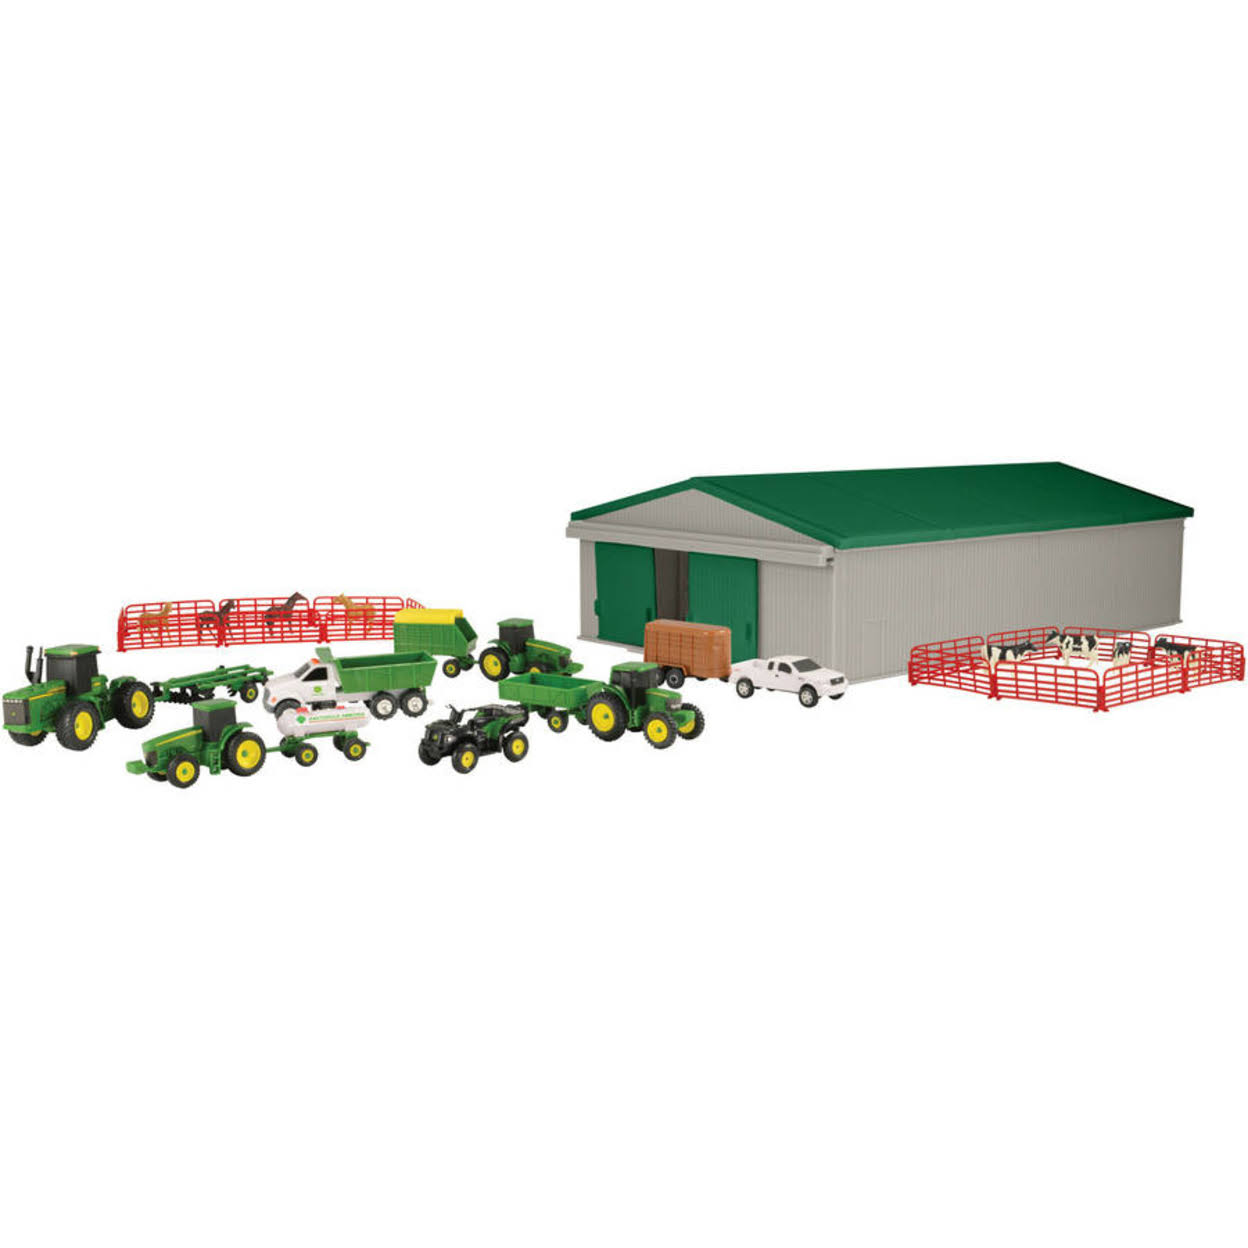 Tomy International John Deere Value Set - 1:64 Scale, 70 Pieces